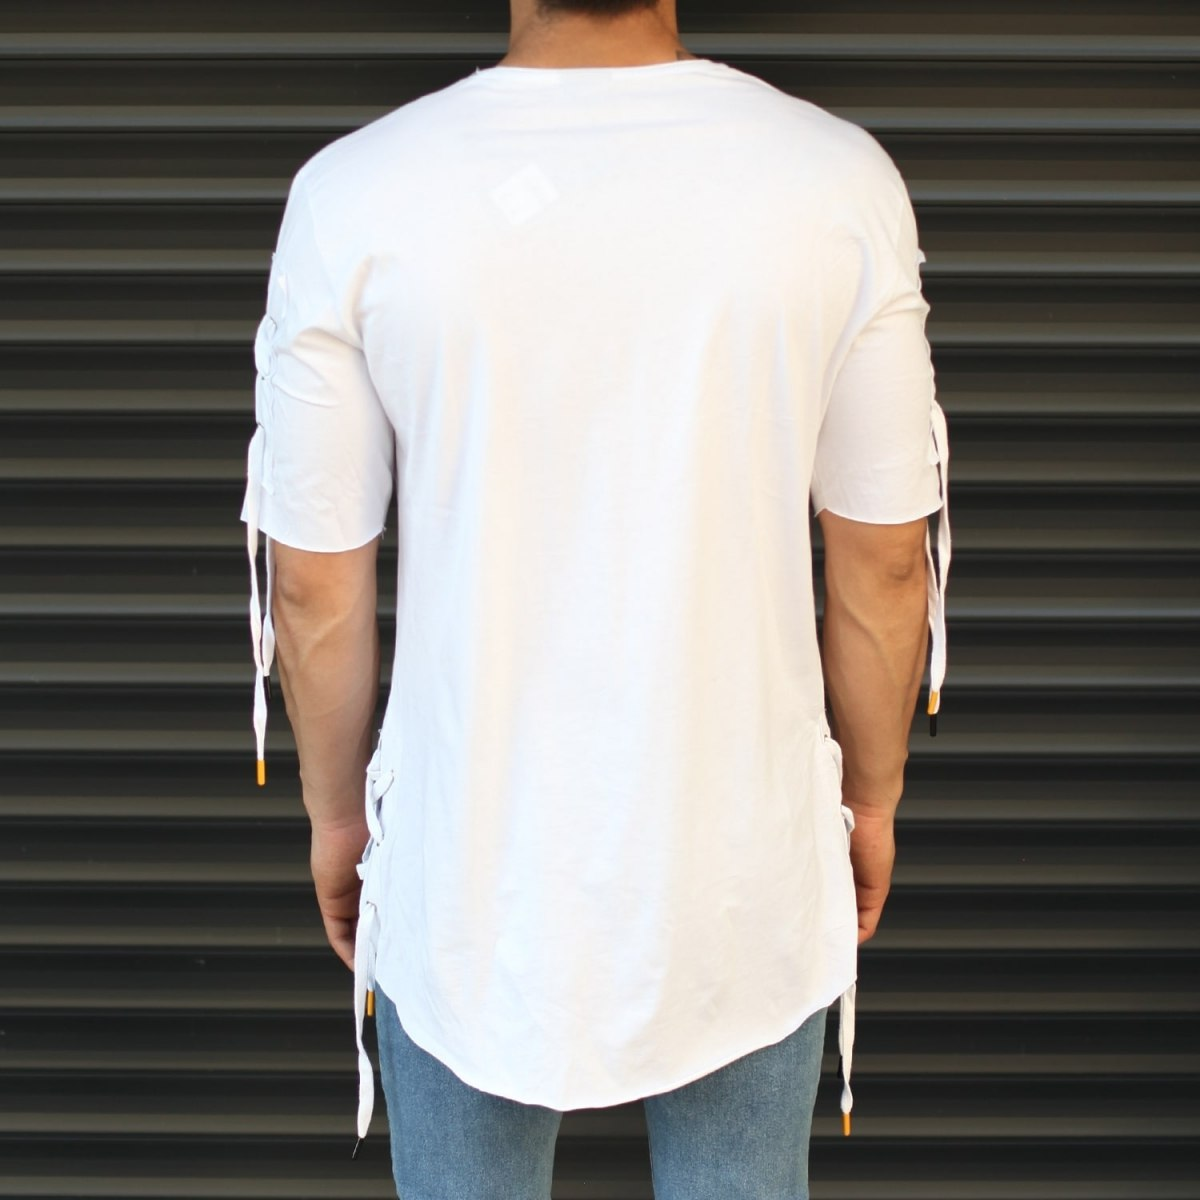 Men's Sleeves Drawstring Longline T-Shirt White Mv Premium Brand - 2